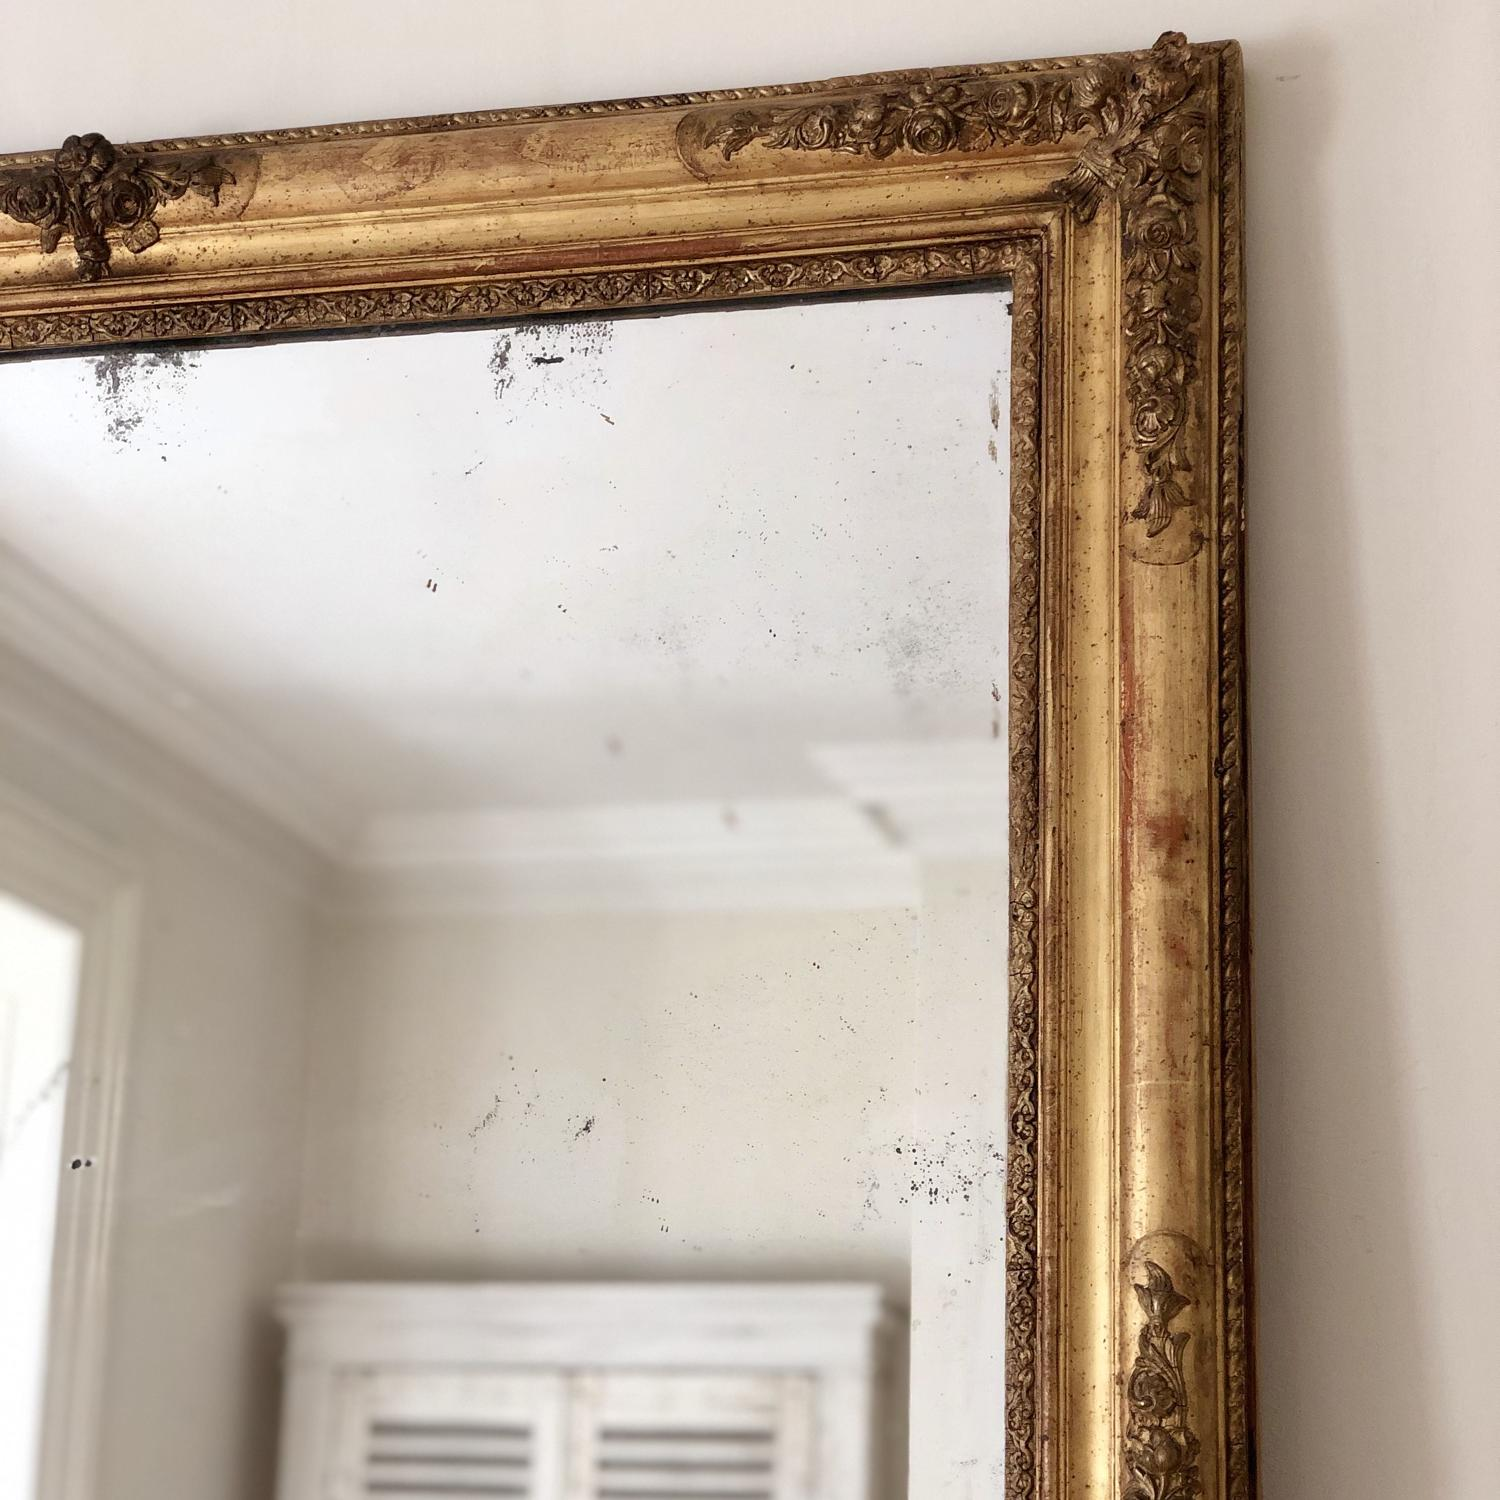 Huge 19th century French gilt rectangular mirror - mercury glass